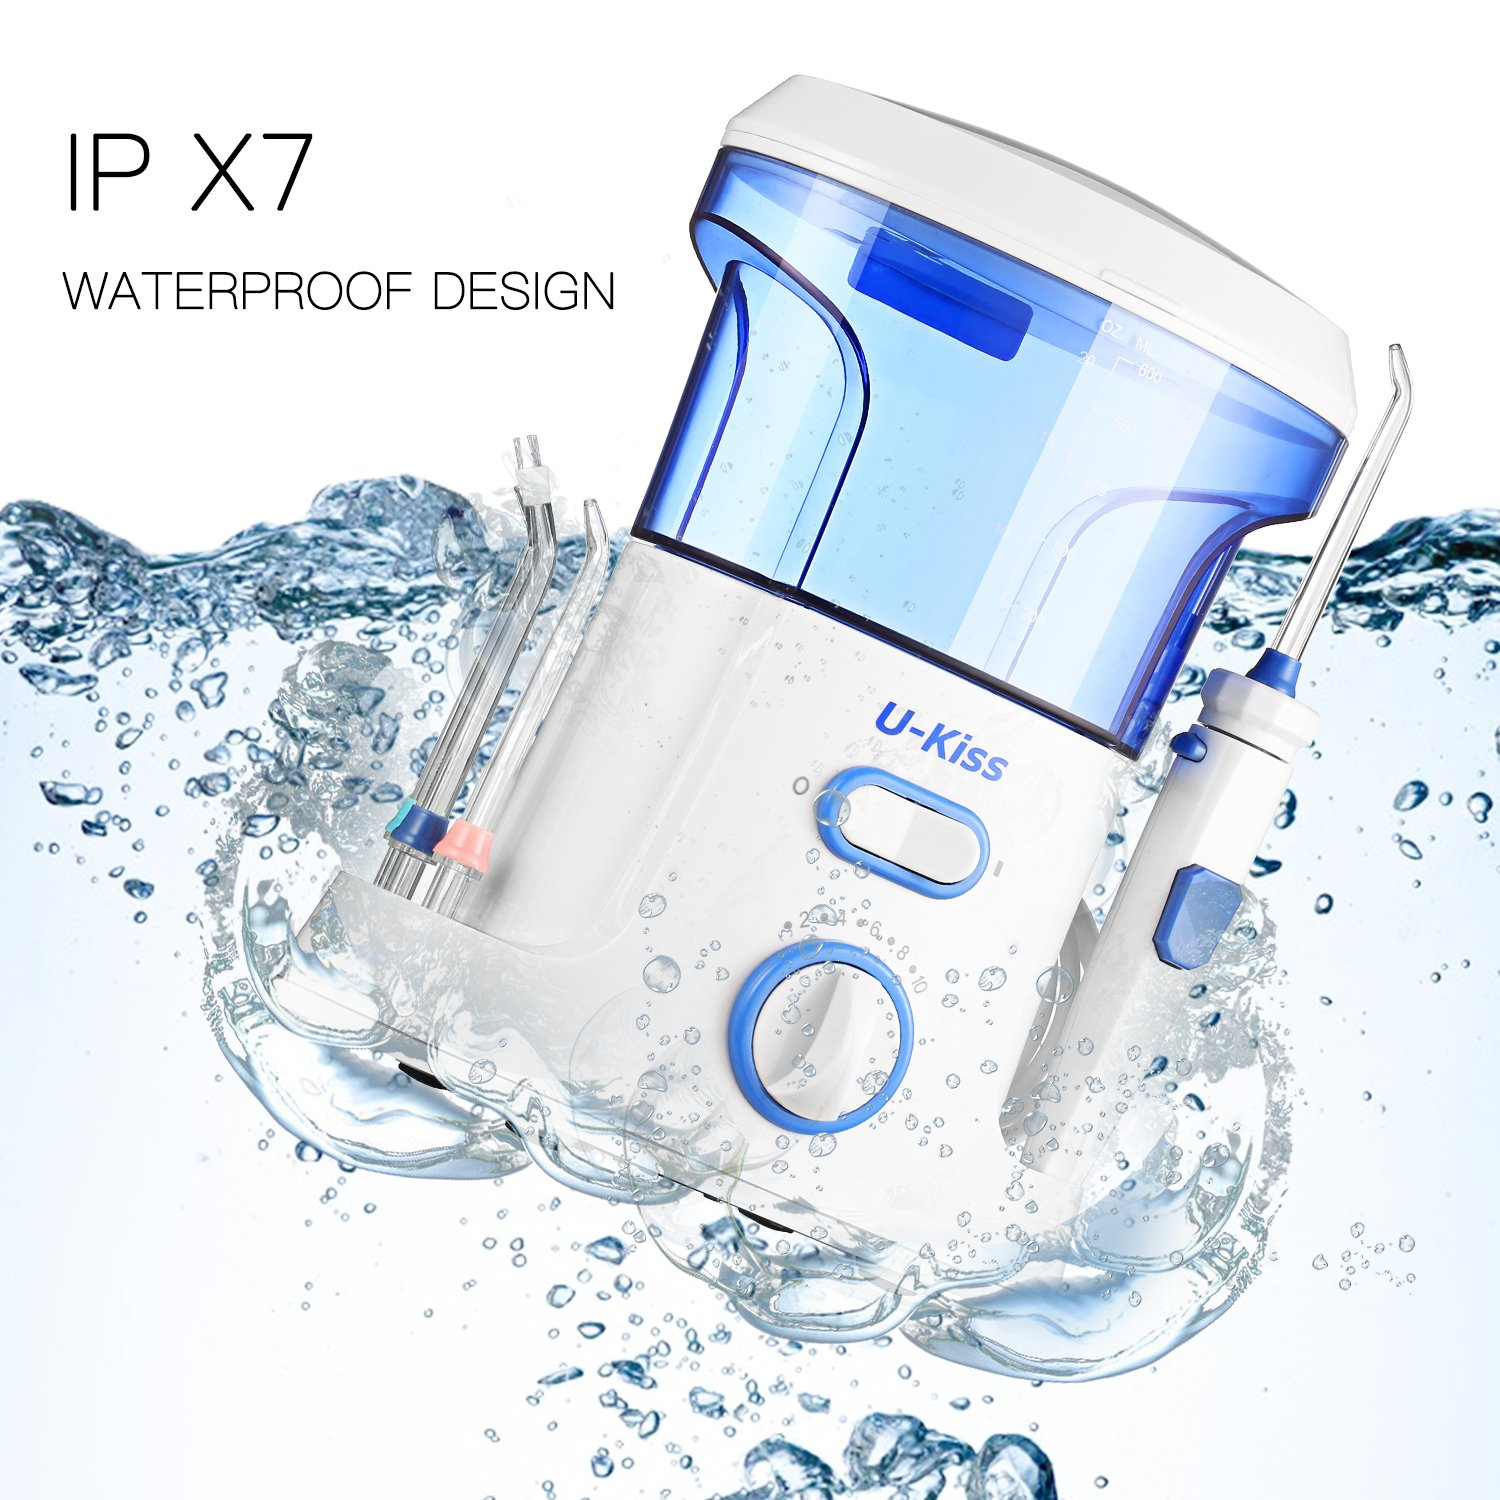 Water Dental Flosser, Dental Care Oral Irrigator with 10 Pressure Settings and 7 Interchangeable Nozzles for Deep Cleaning Between Teeth, Gumline, Braces and Bridges, Leak-Proof Electric Quiet Design